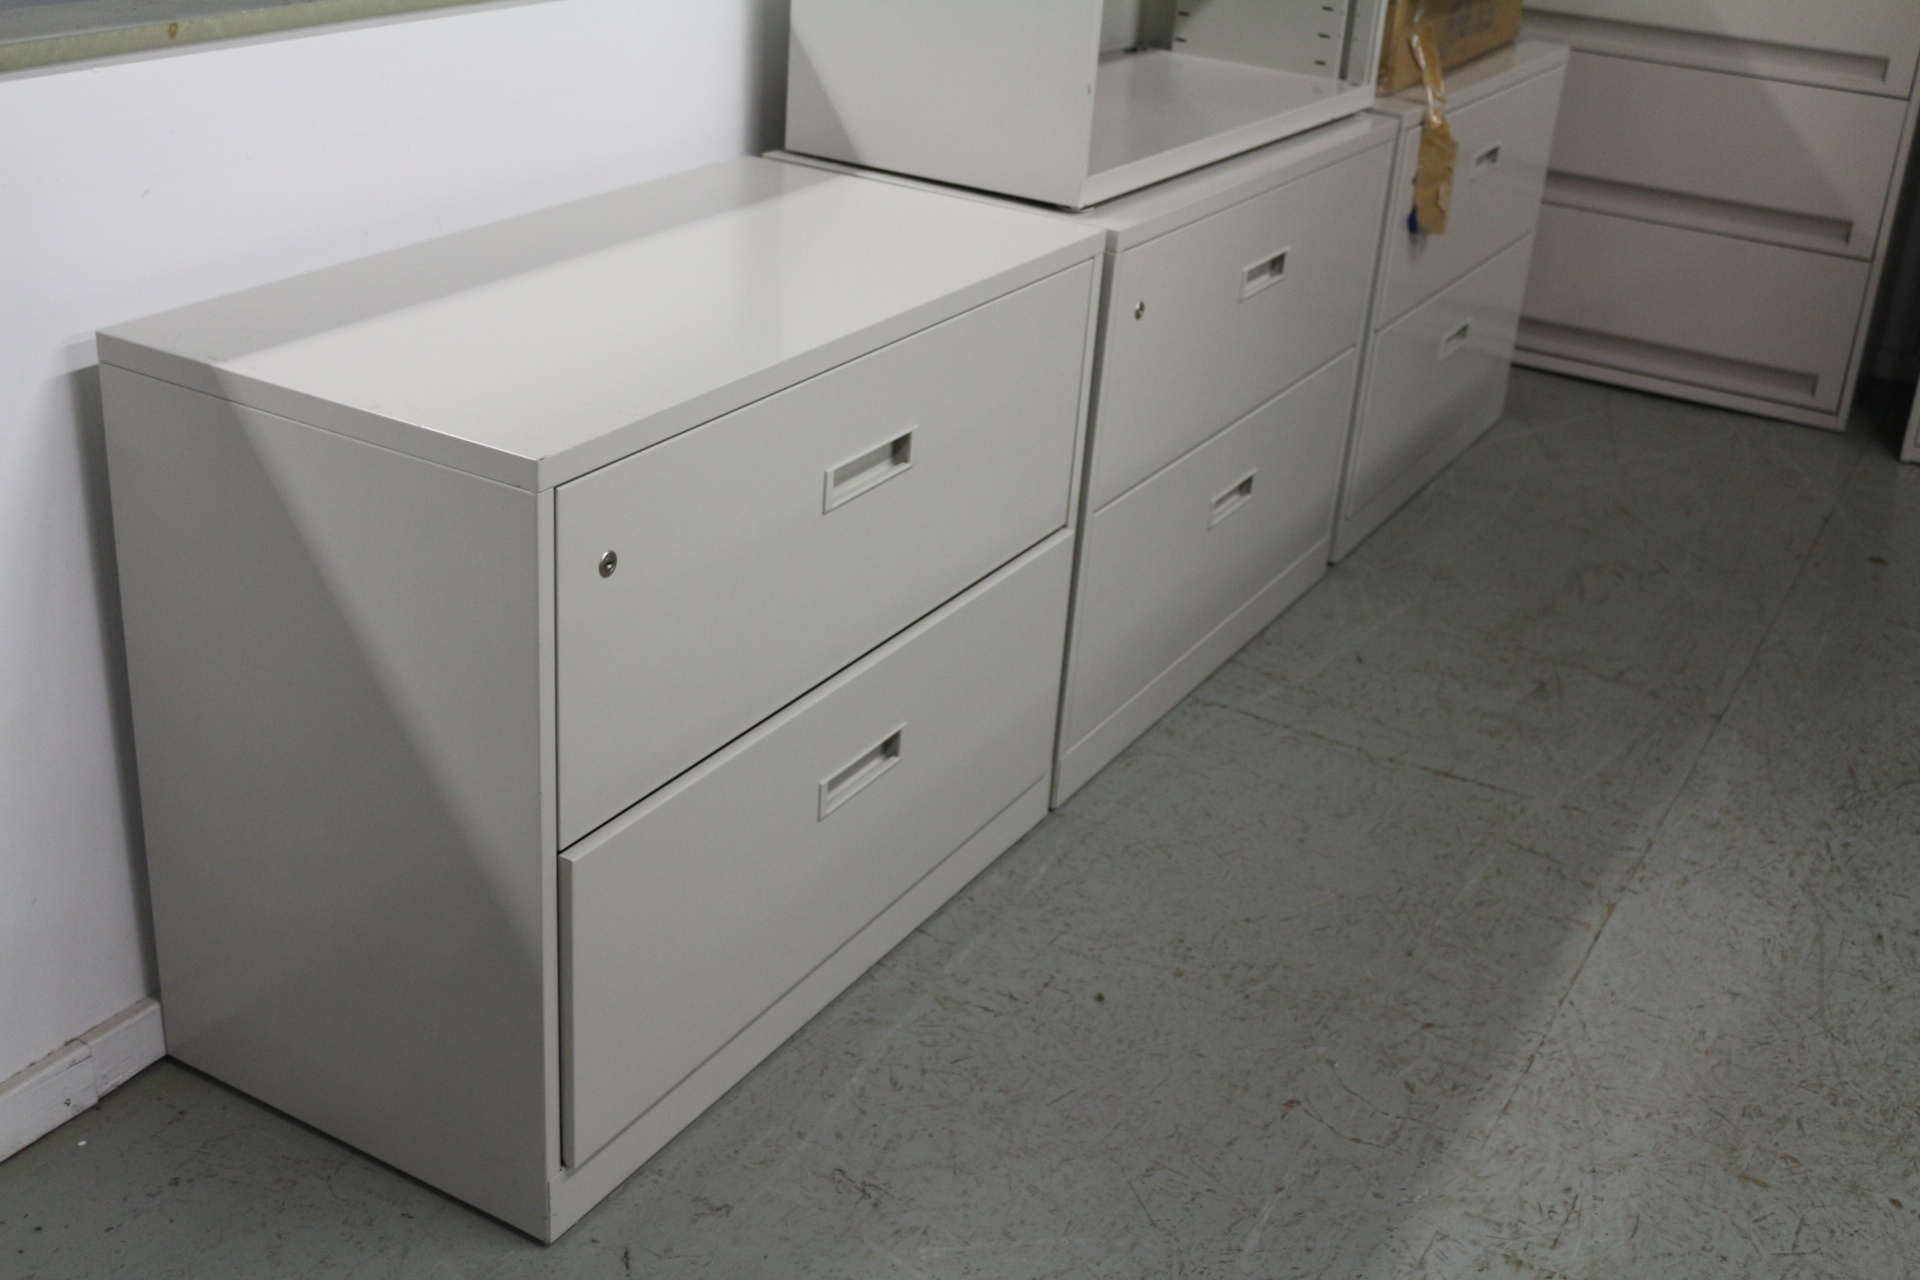 peartreeofficefurniture_peartreeofficefurniture_img_0999.jpg